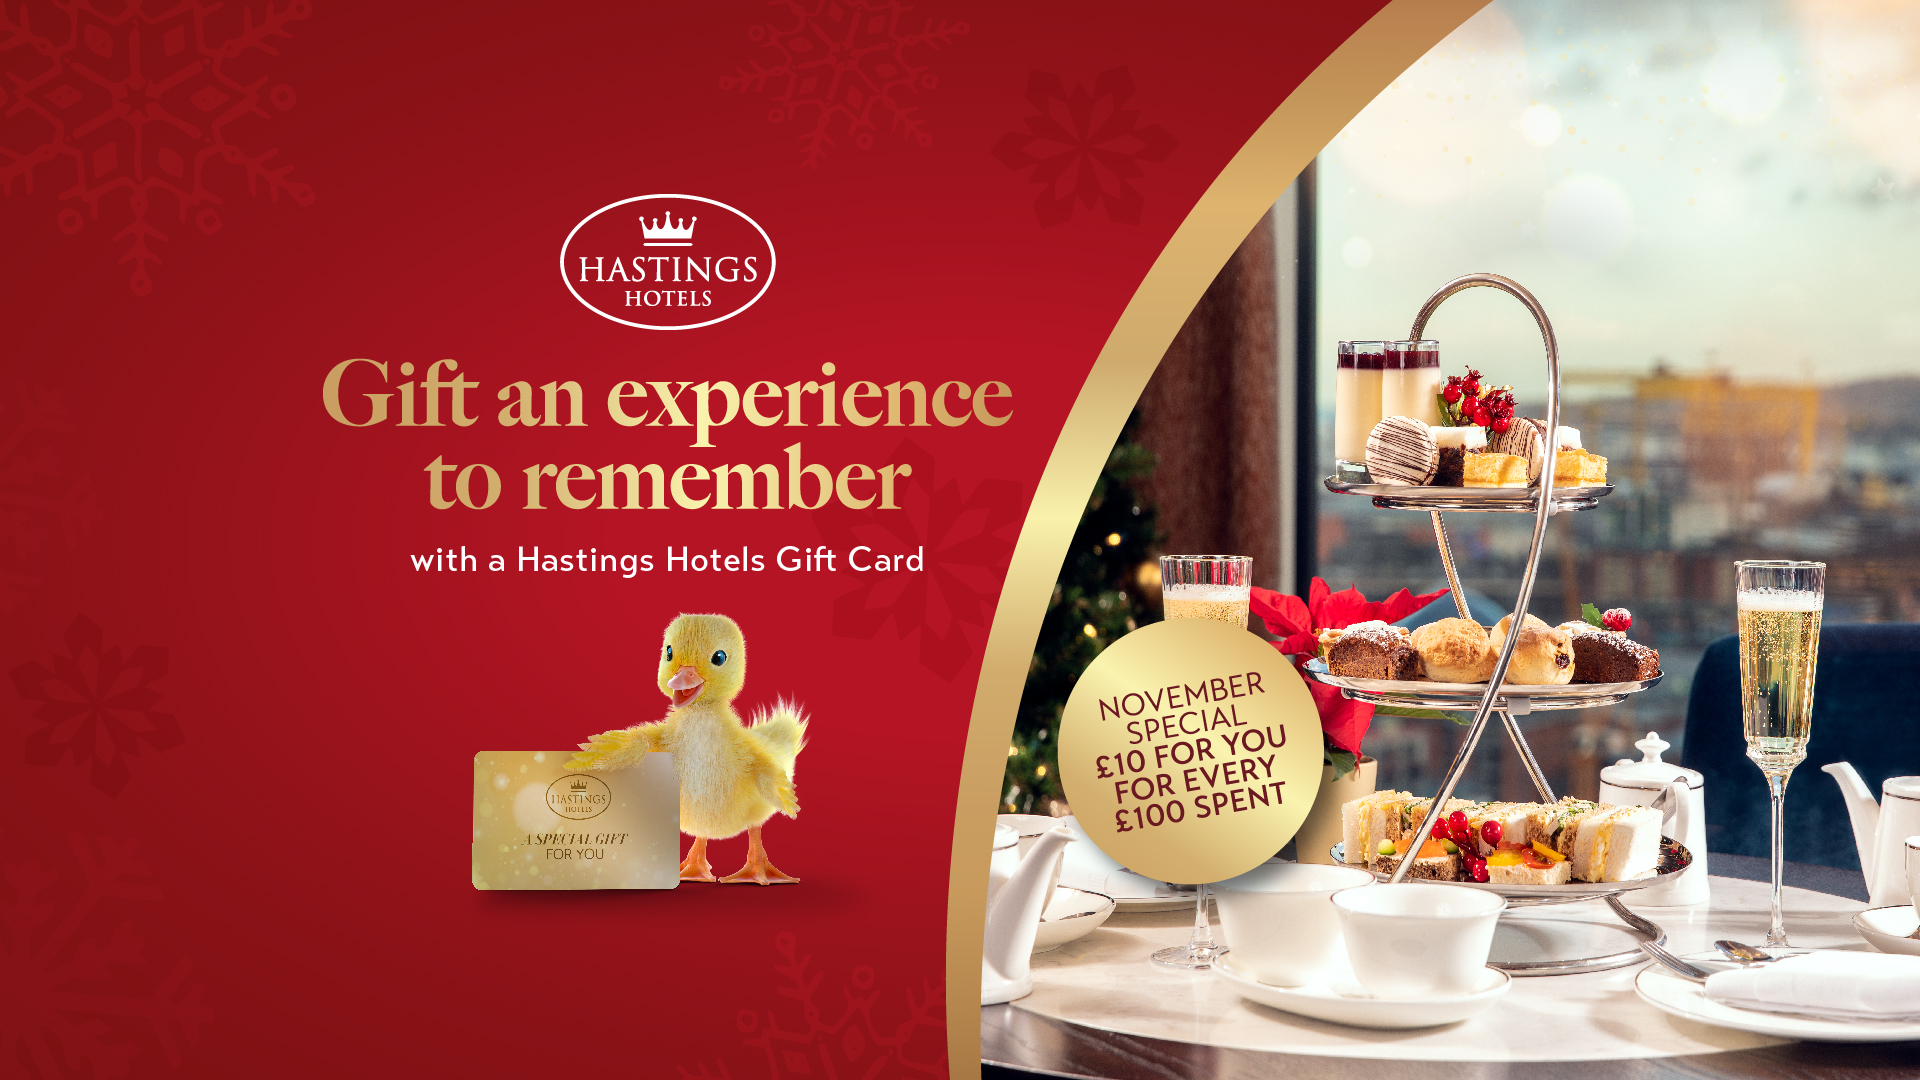 Christmas Gift Cards Give The Gift Of Hastings Hotels